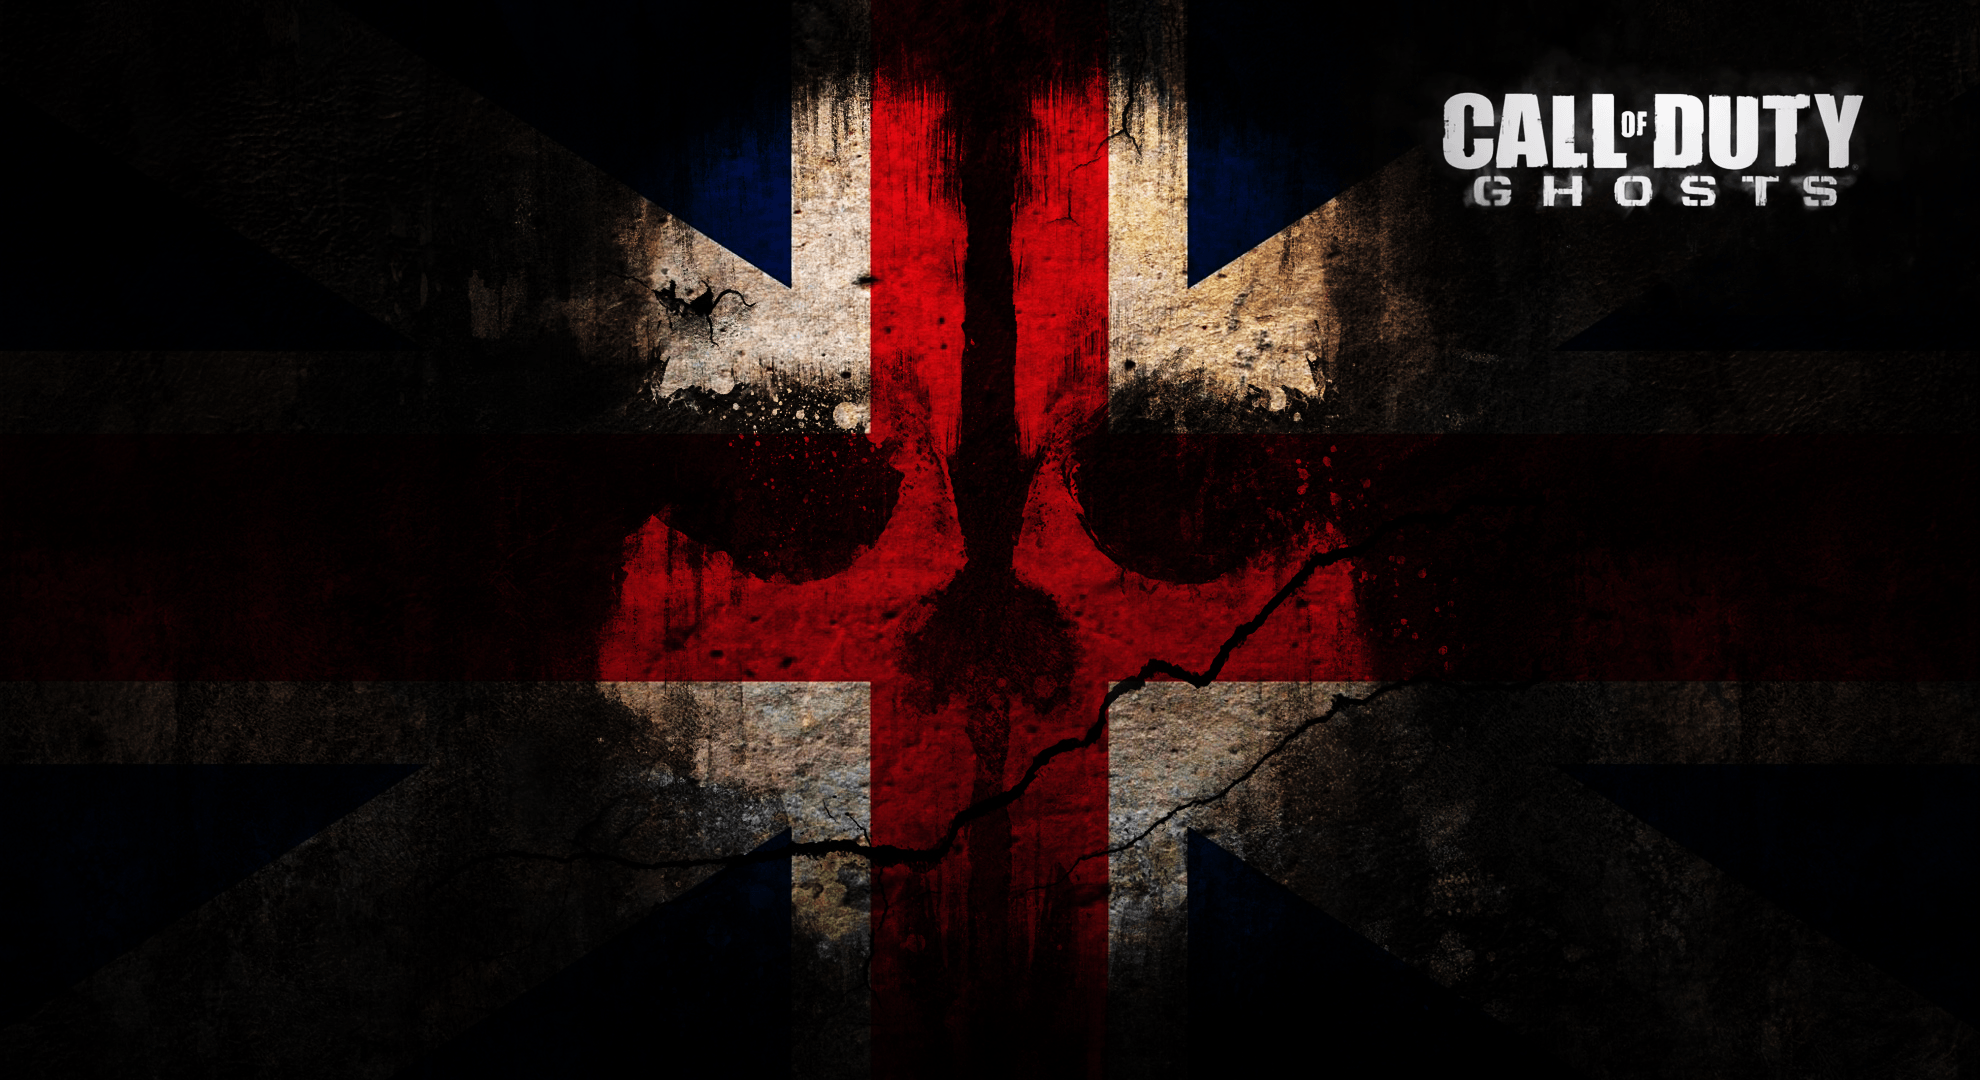 Call Of Duty Wallpapers, Call Of Duty Wallpapers in HQ Resolution ...